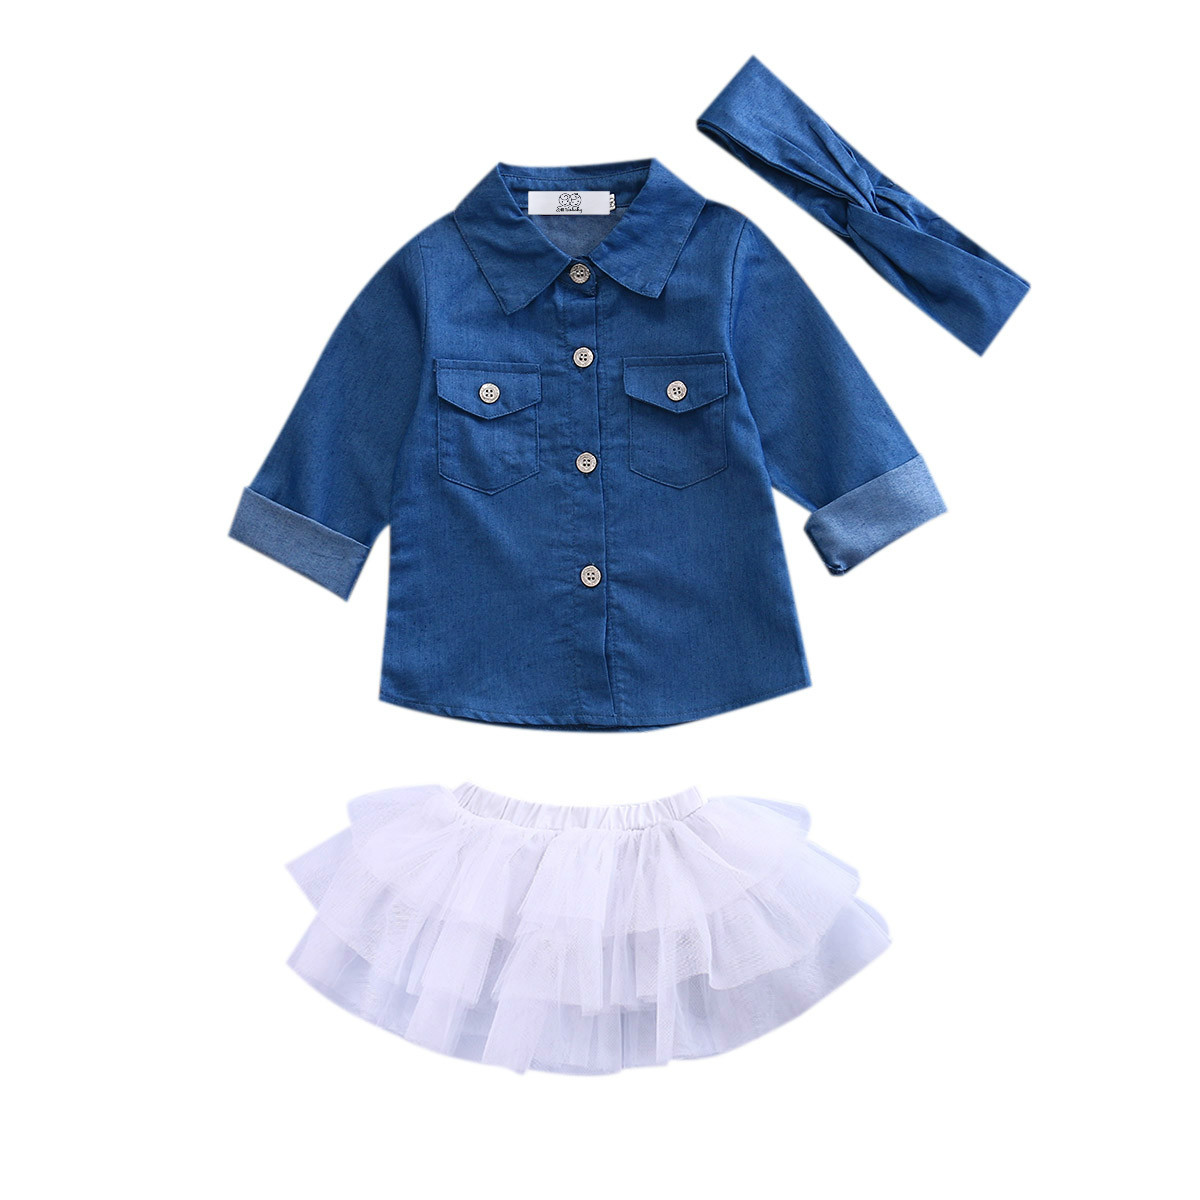 Baby Girl Clothes Set Hot Sale Sweet Girl Toddler Kids Baby Girl Denim Tops Shirt+Tutu Skirts Party Dress 3pcs Outfits Set 2pcs children outfit clothes kids baby girl off shoulder cotton ruffled sleeve tops striped t shirt blue denim jeans sunsuit set